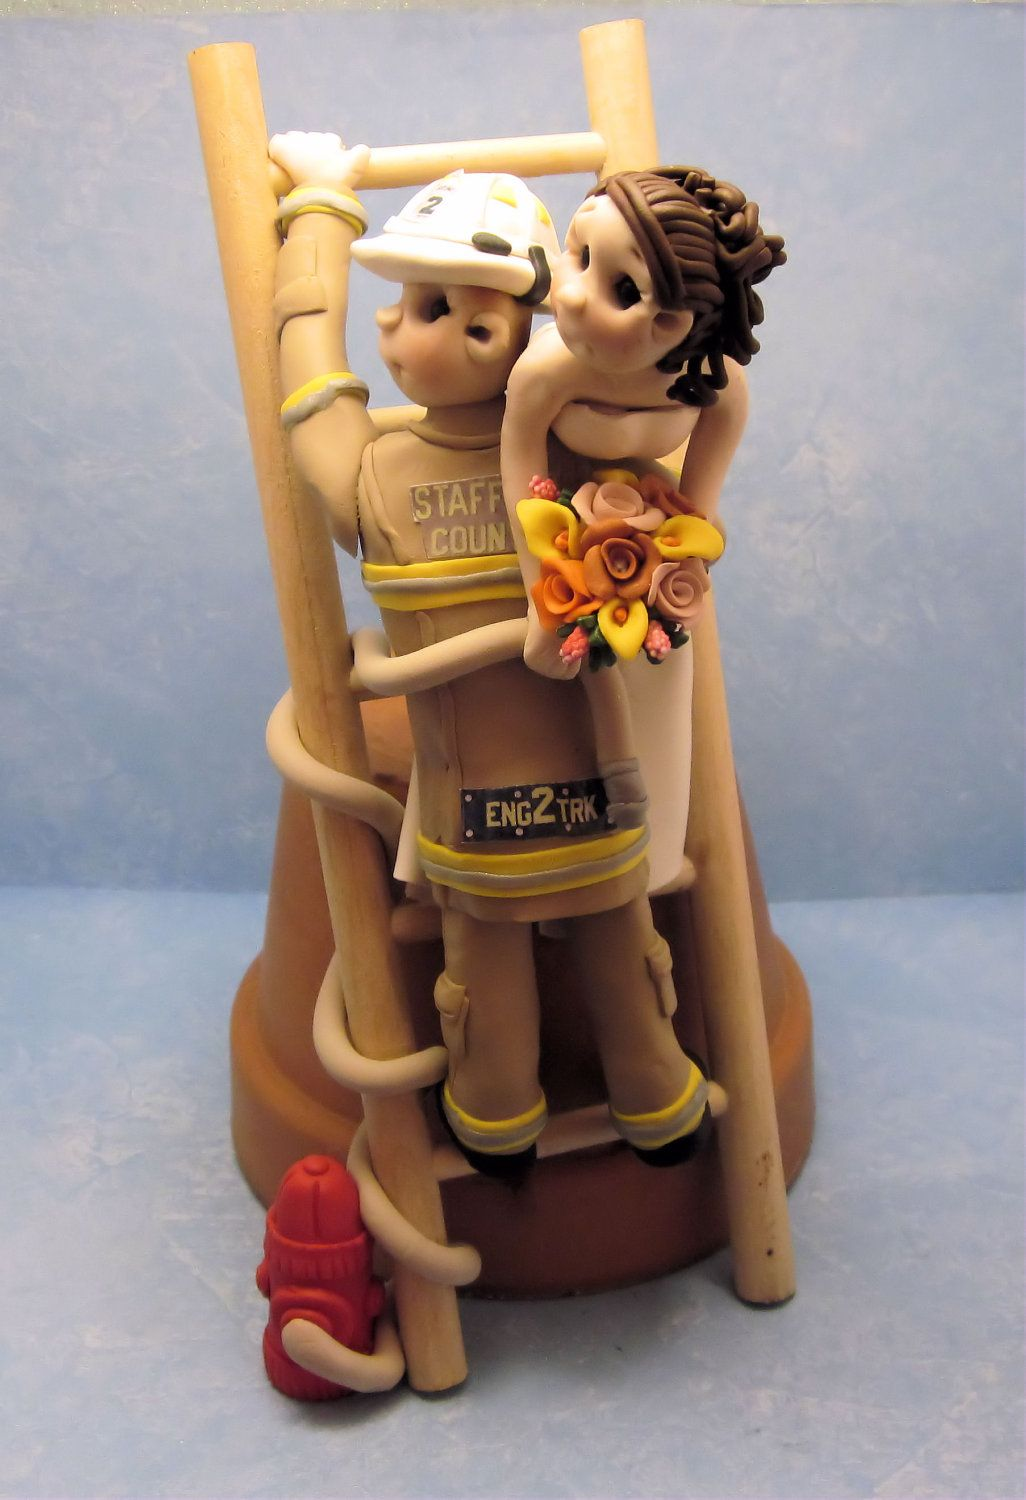 fireman and bride wedding cake toppers fighter cakes firefighter cake topper 14268